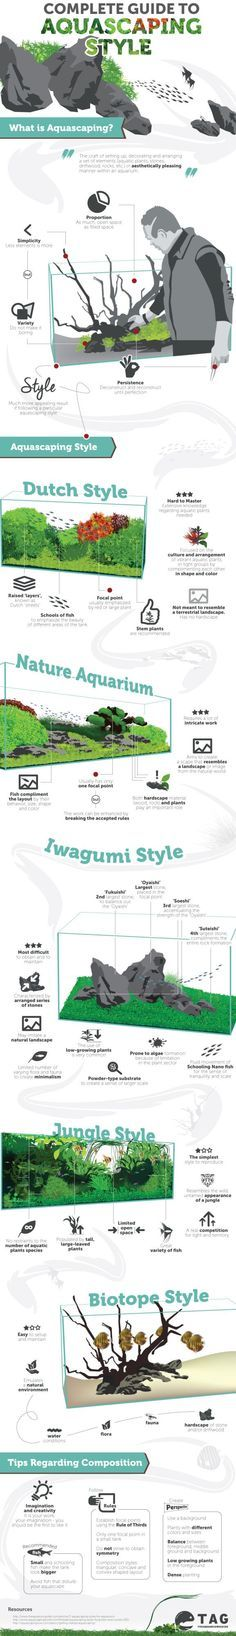 Aquascaping Style - The Complete Guide   The Aquarium Guide